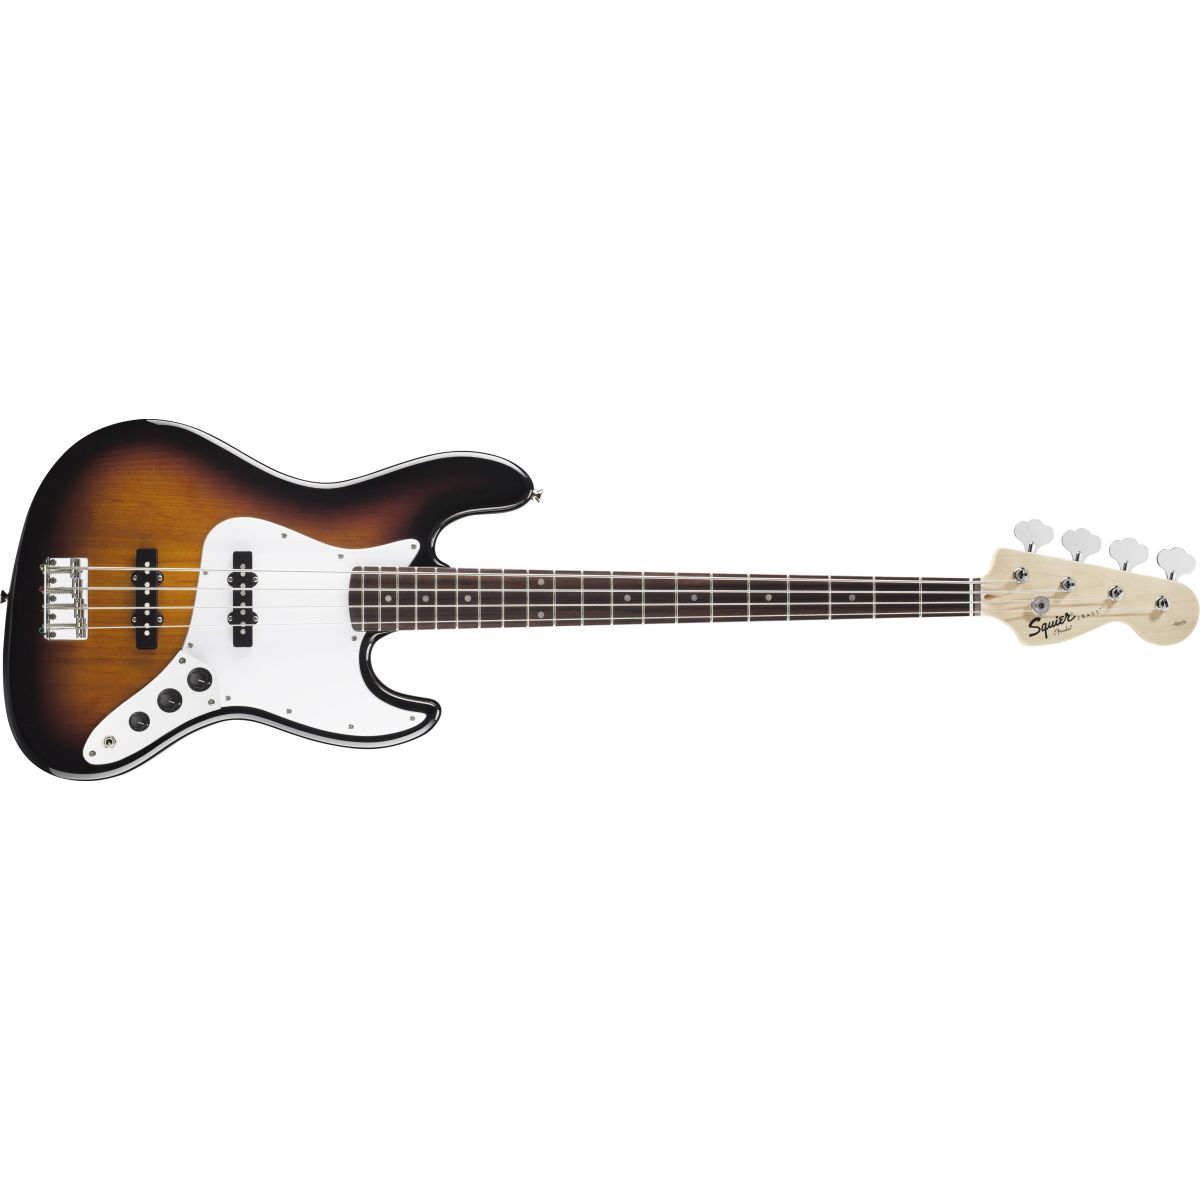 CONTRABAIXO FENDER 031 0760 - SQUIER AFFINITY J. BASS - 532 - BROWN SUNBURST